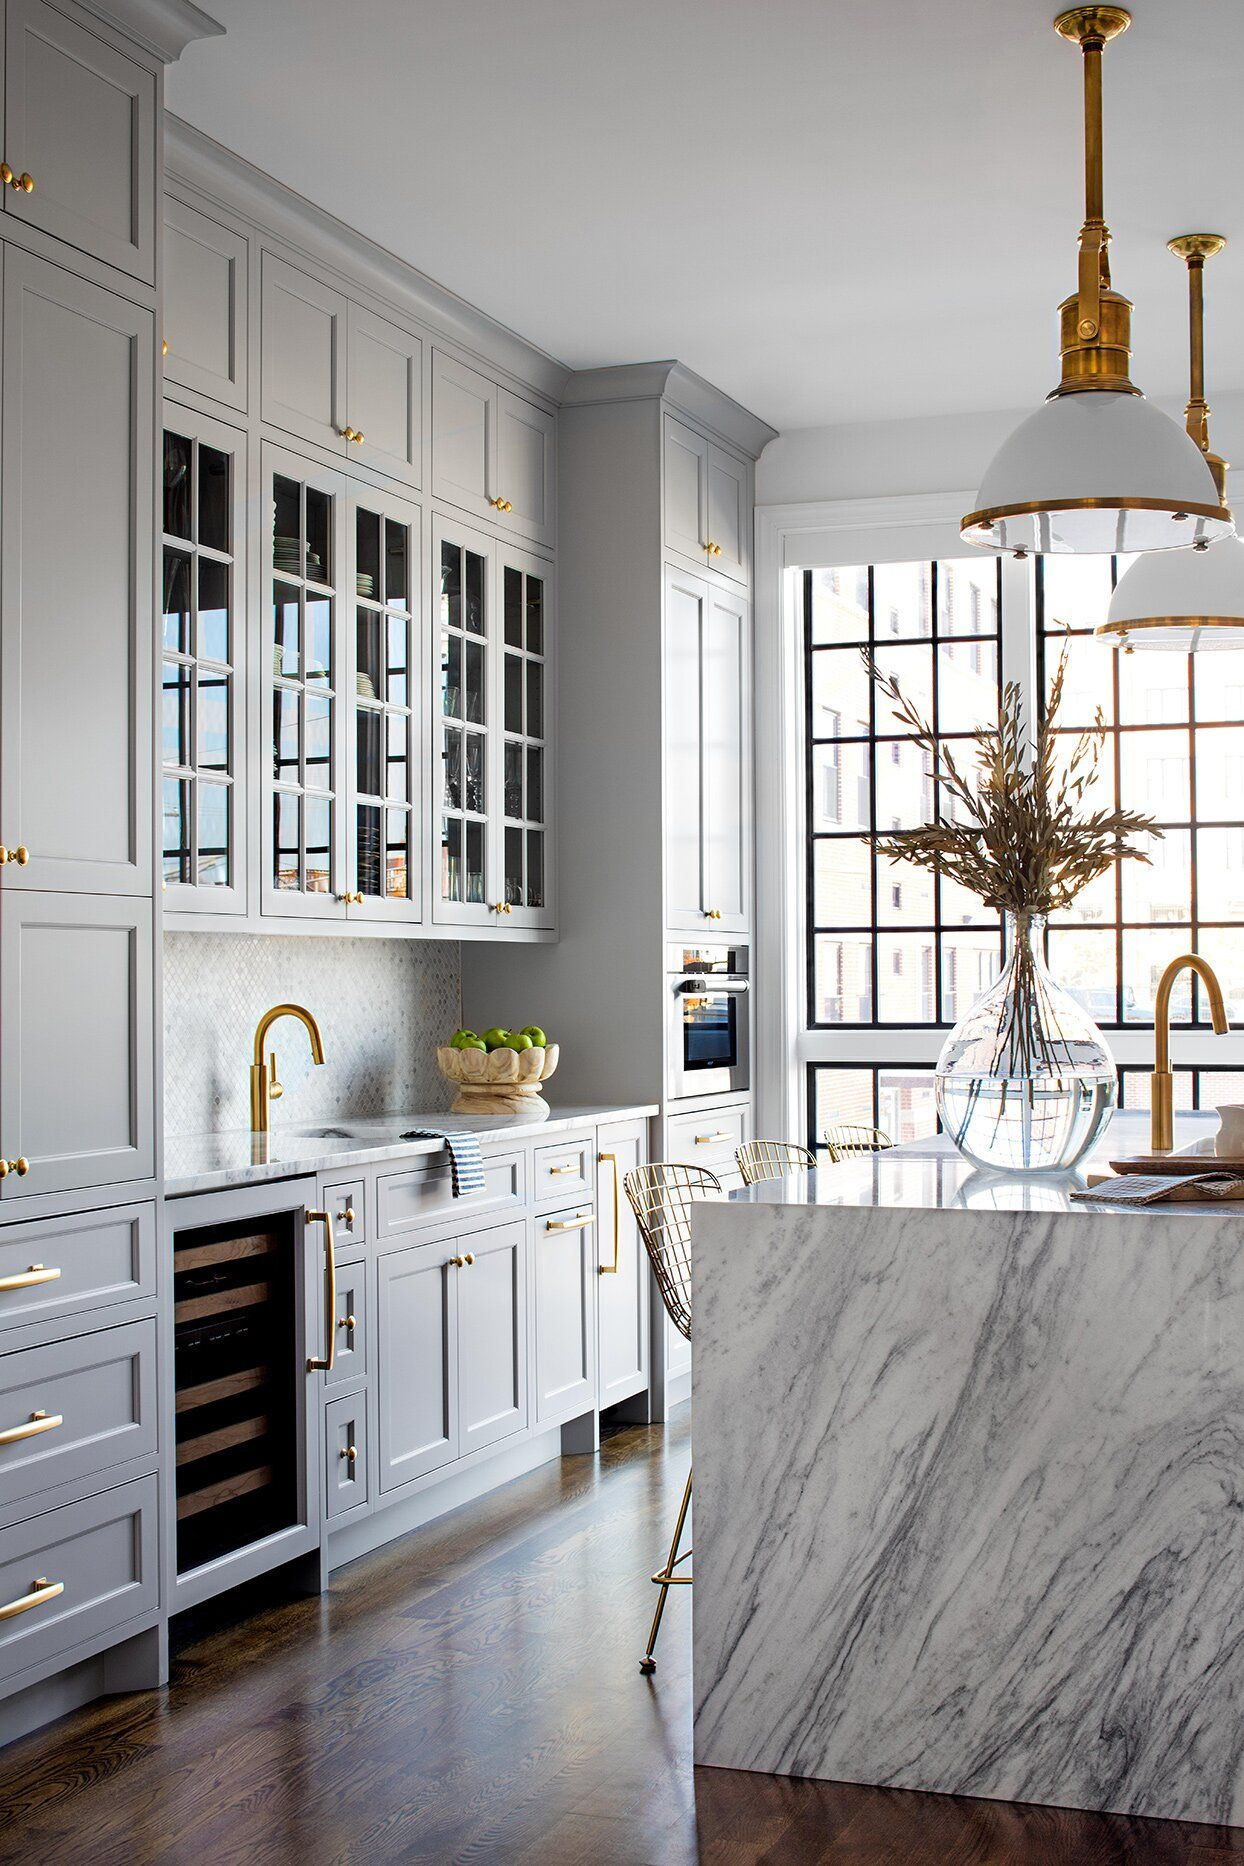 6 Proven Tips For Choosing The Perfect Gray Kitchen Cabinet Colors In 2020 Grey Kitchen Designs Grey Kitchen White Marble Kitchen